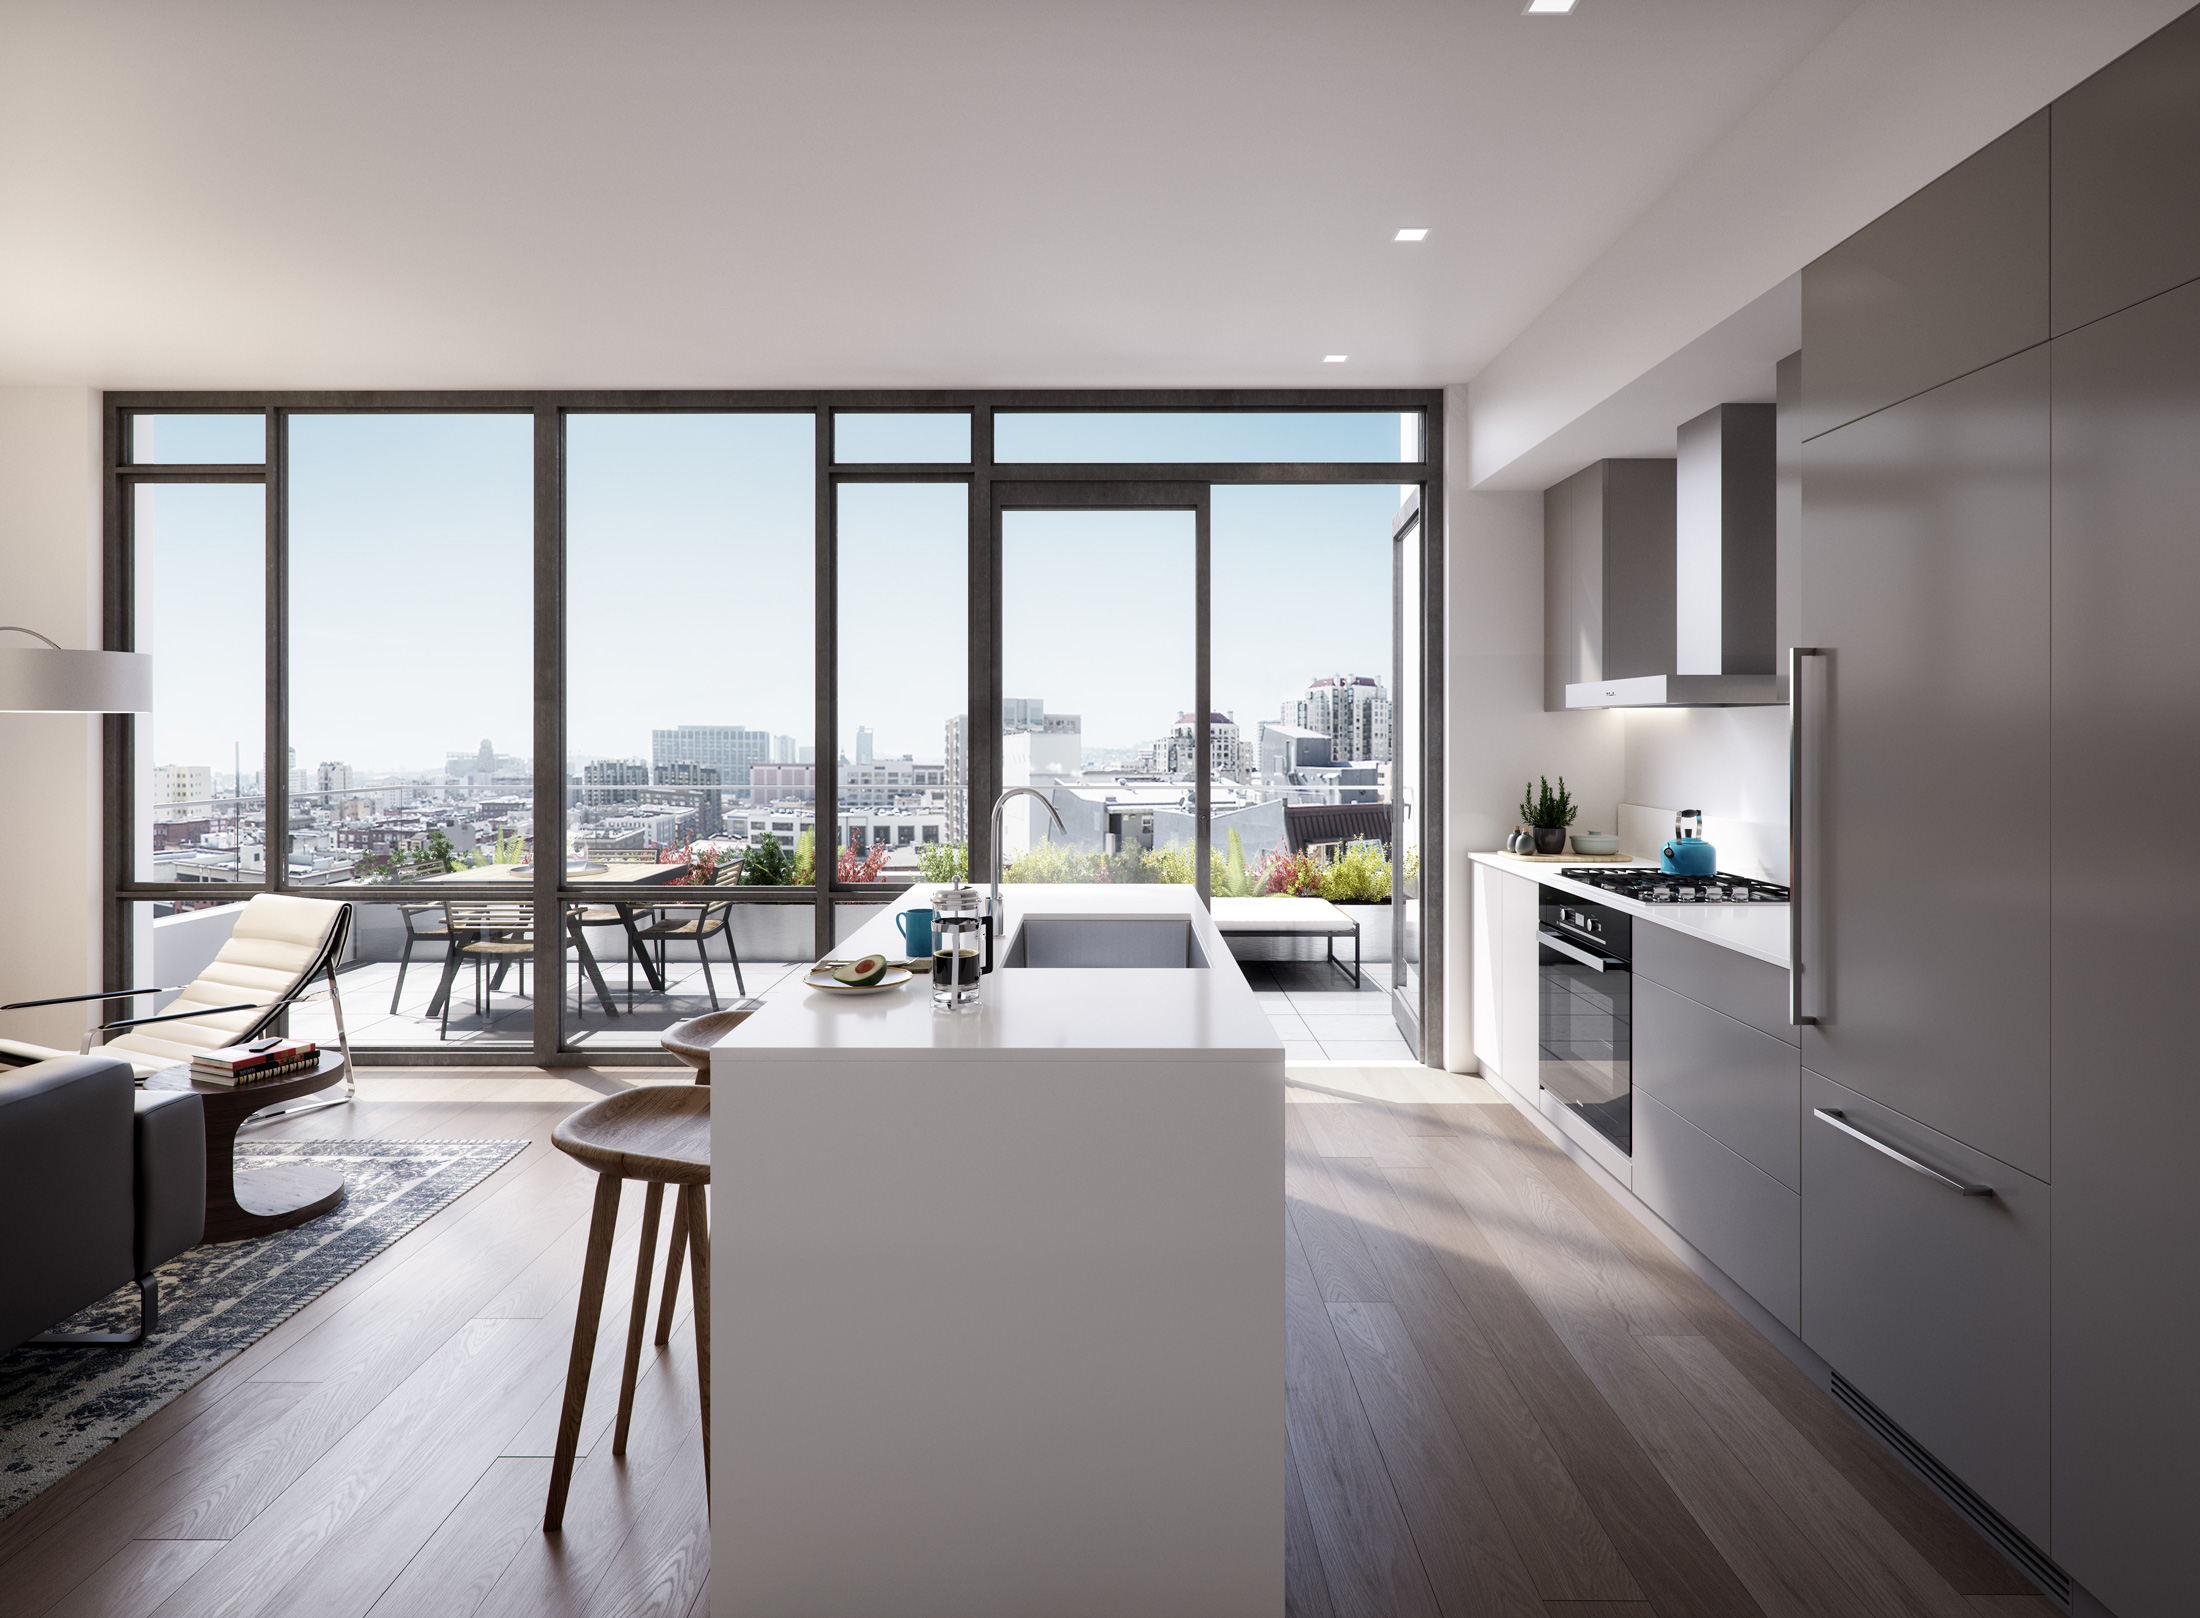 Architectural Rendering of the kitchen of the The Austin project located in San Francisco, California